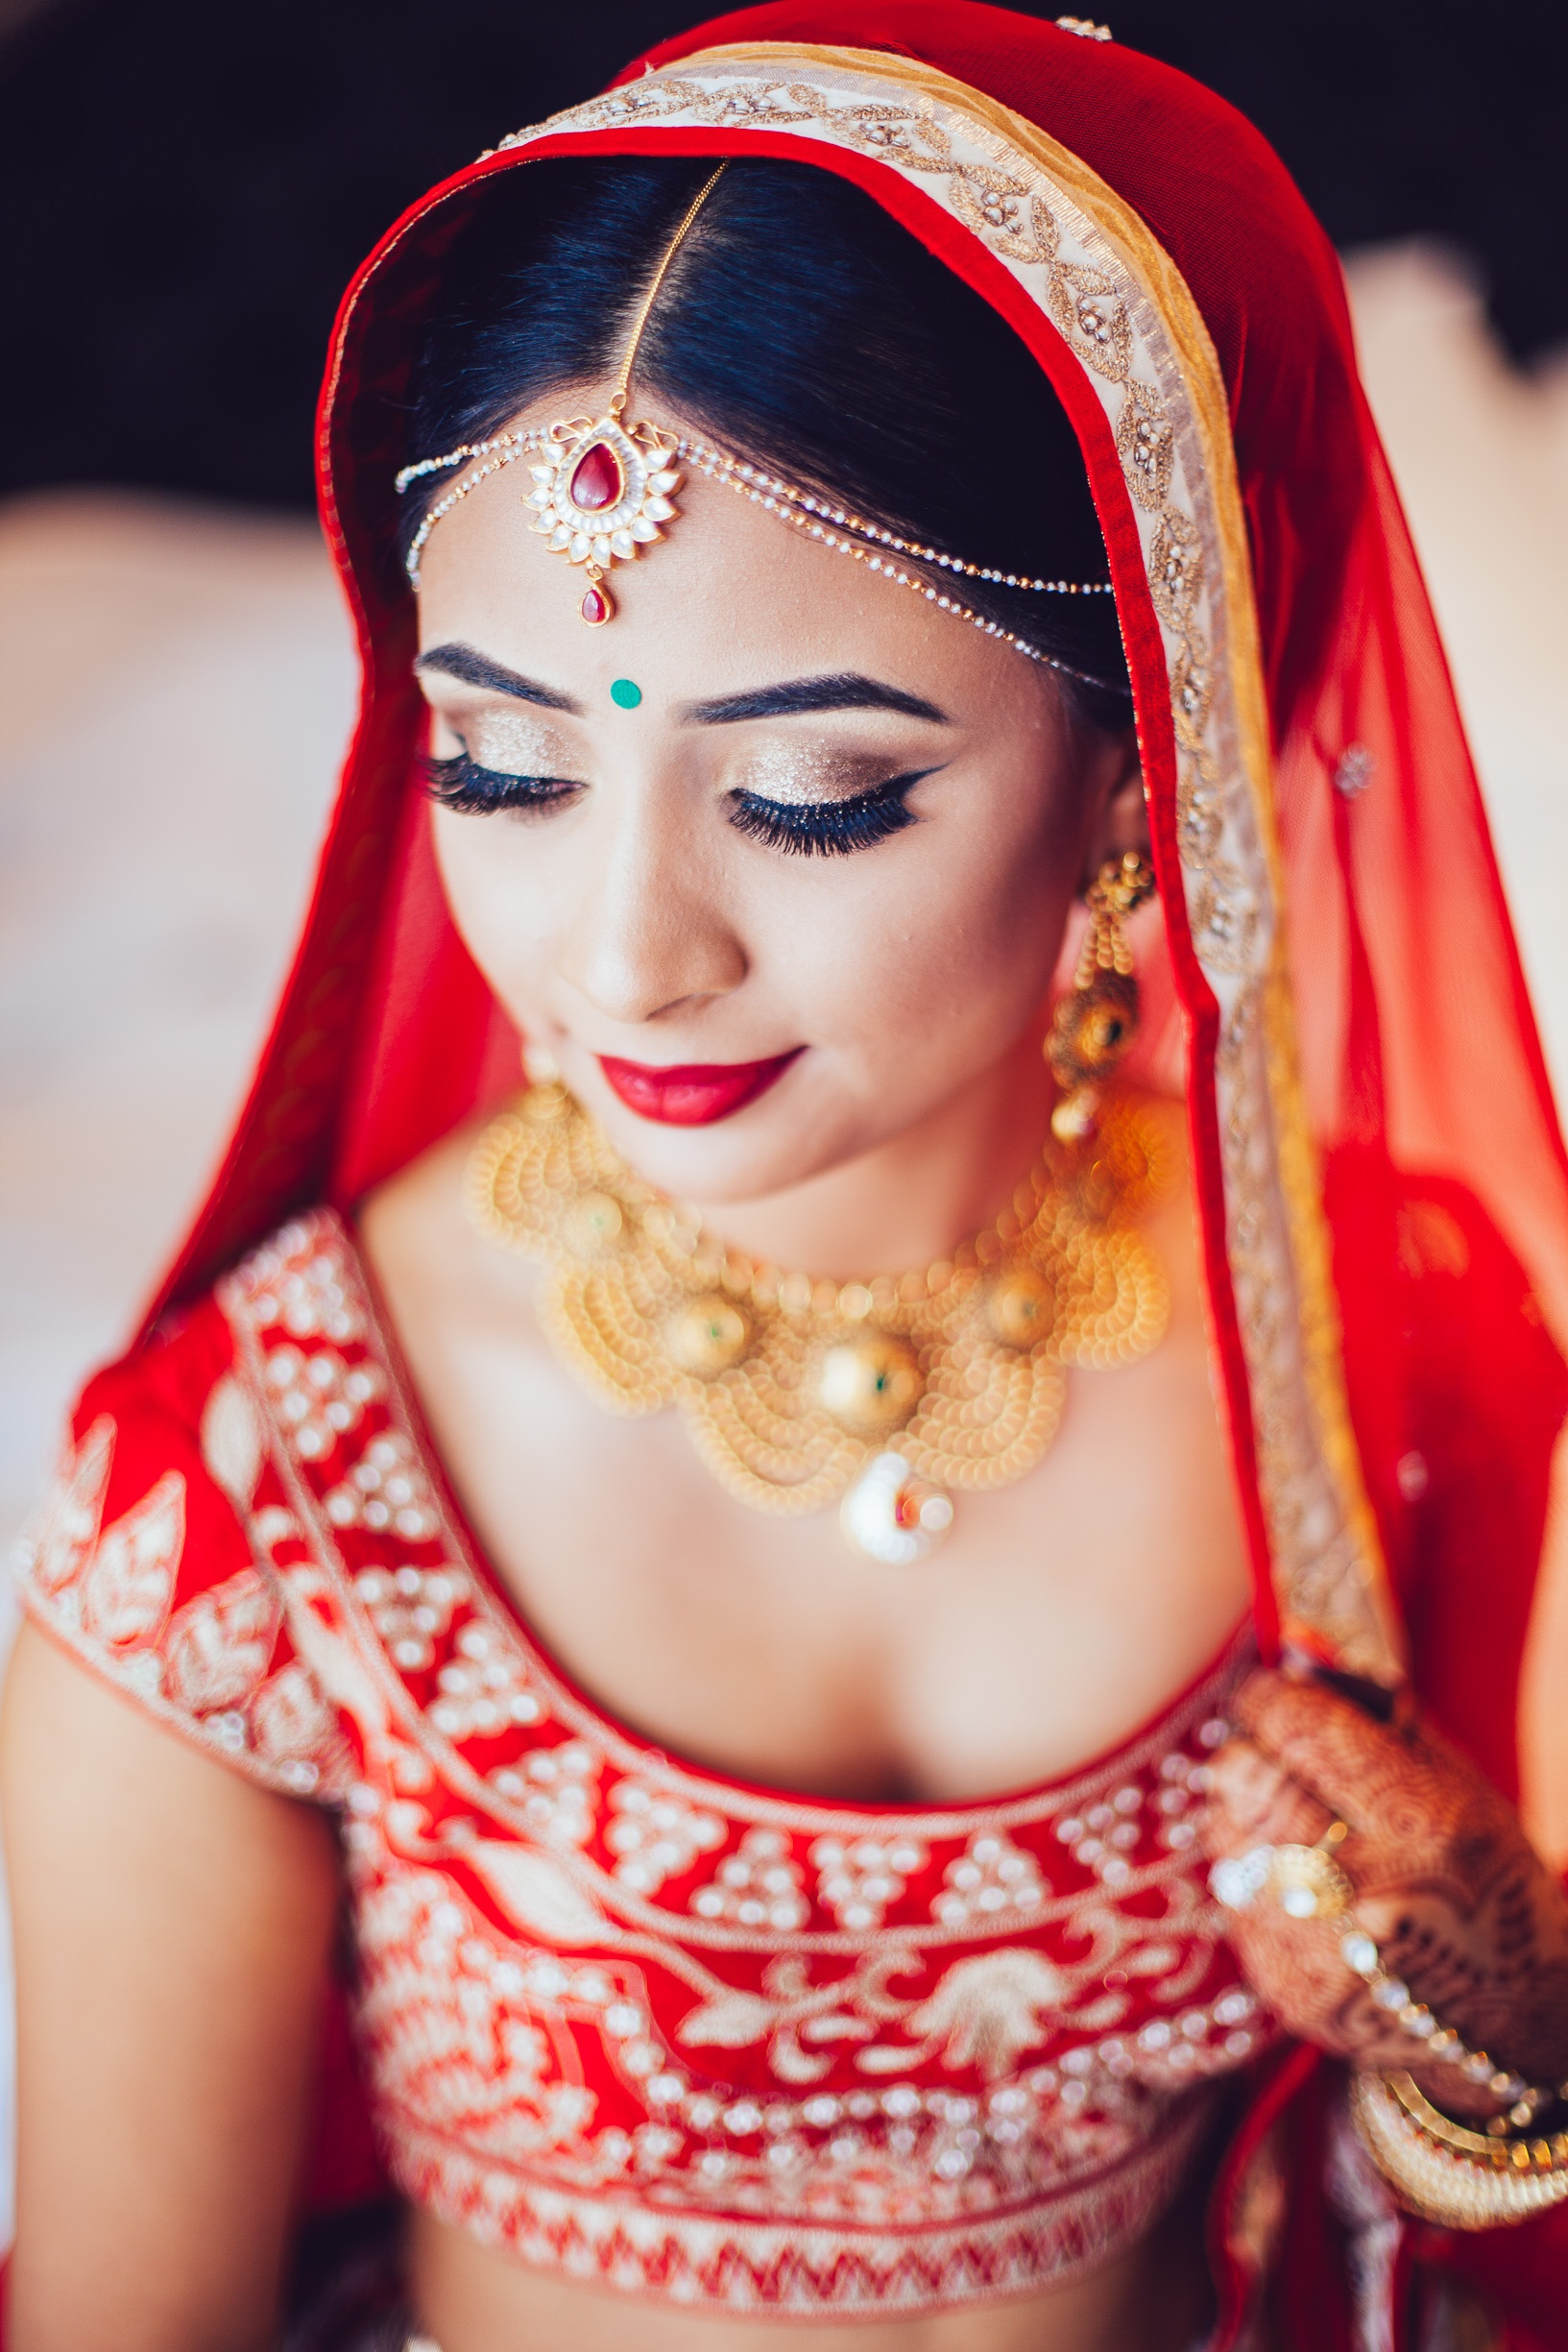 amit&ceema_eden_moments_wedding_photography-7